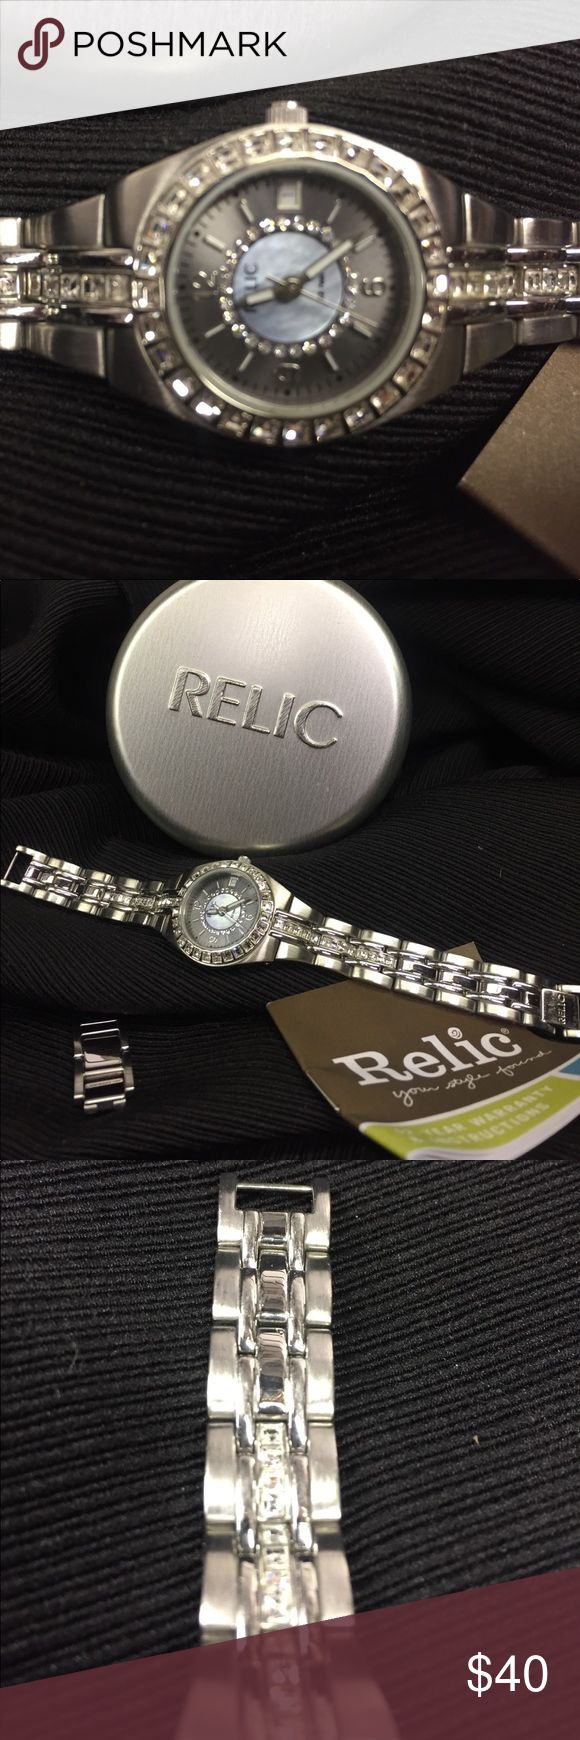 Relic watch, sterling silver Relic watch with rhinestone bezel around the face and 1/2 way down both sides of the band. There are NO stones missing and has 2 extra links that can easily be added for length Jewelry